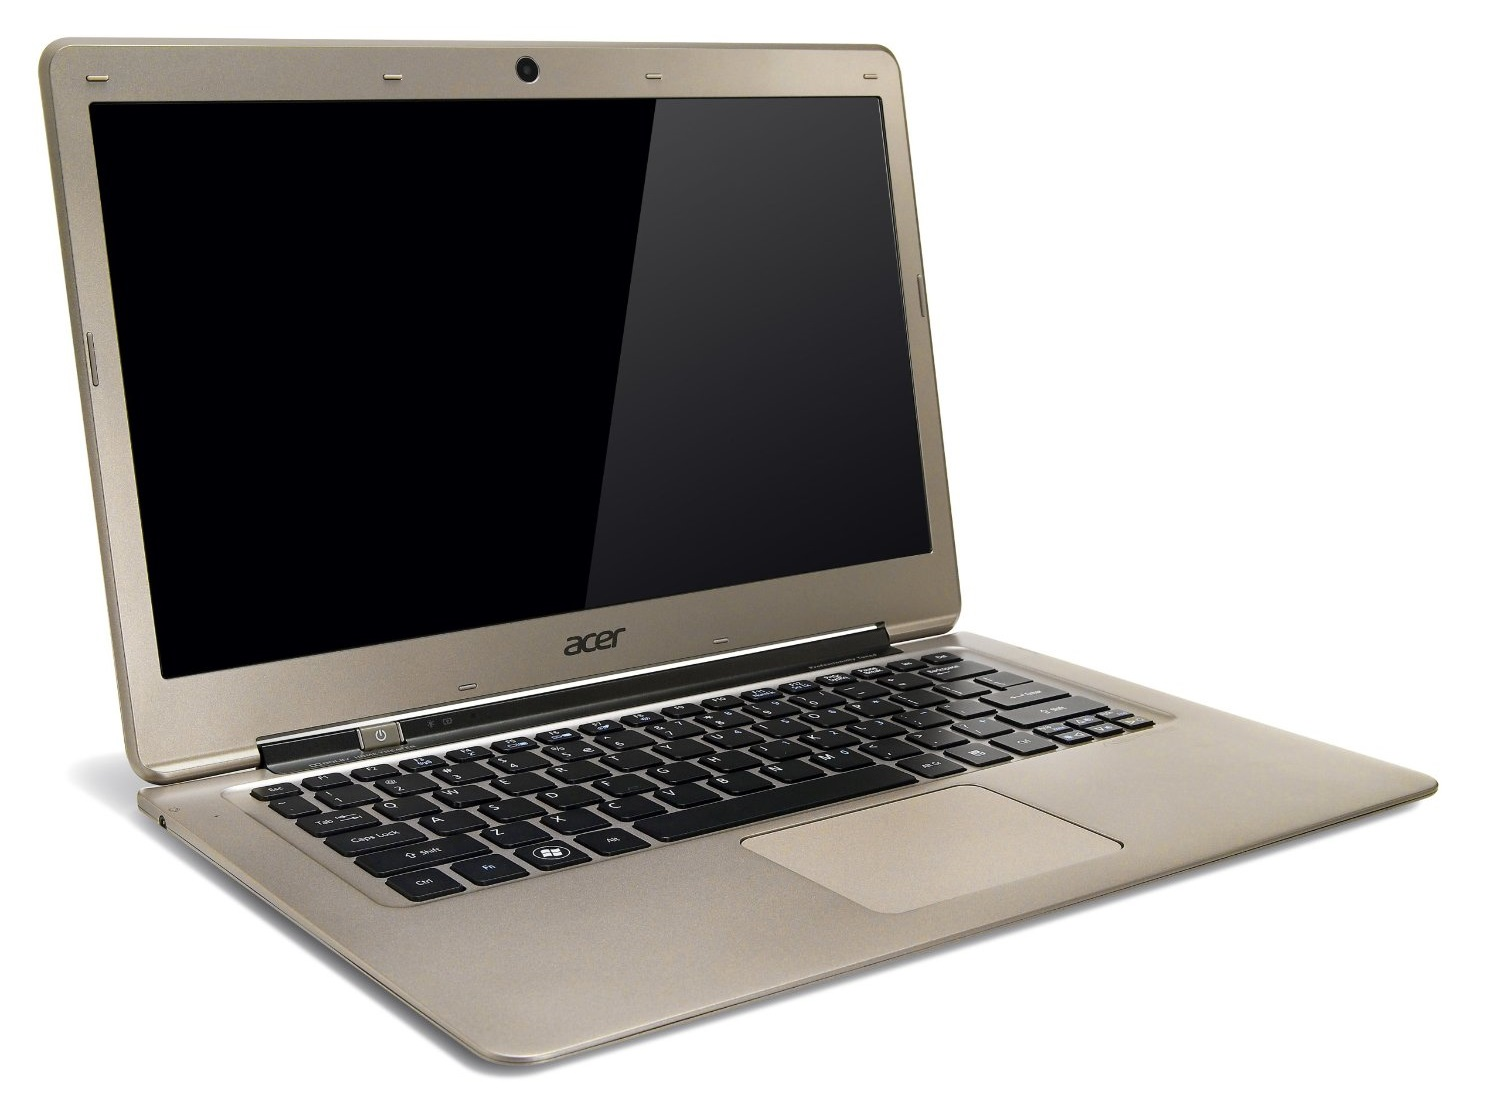 Acer Aspire S3 (Core i7) Review